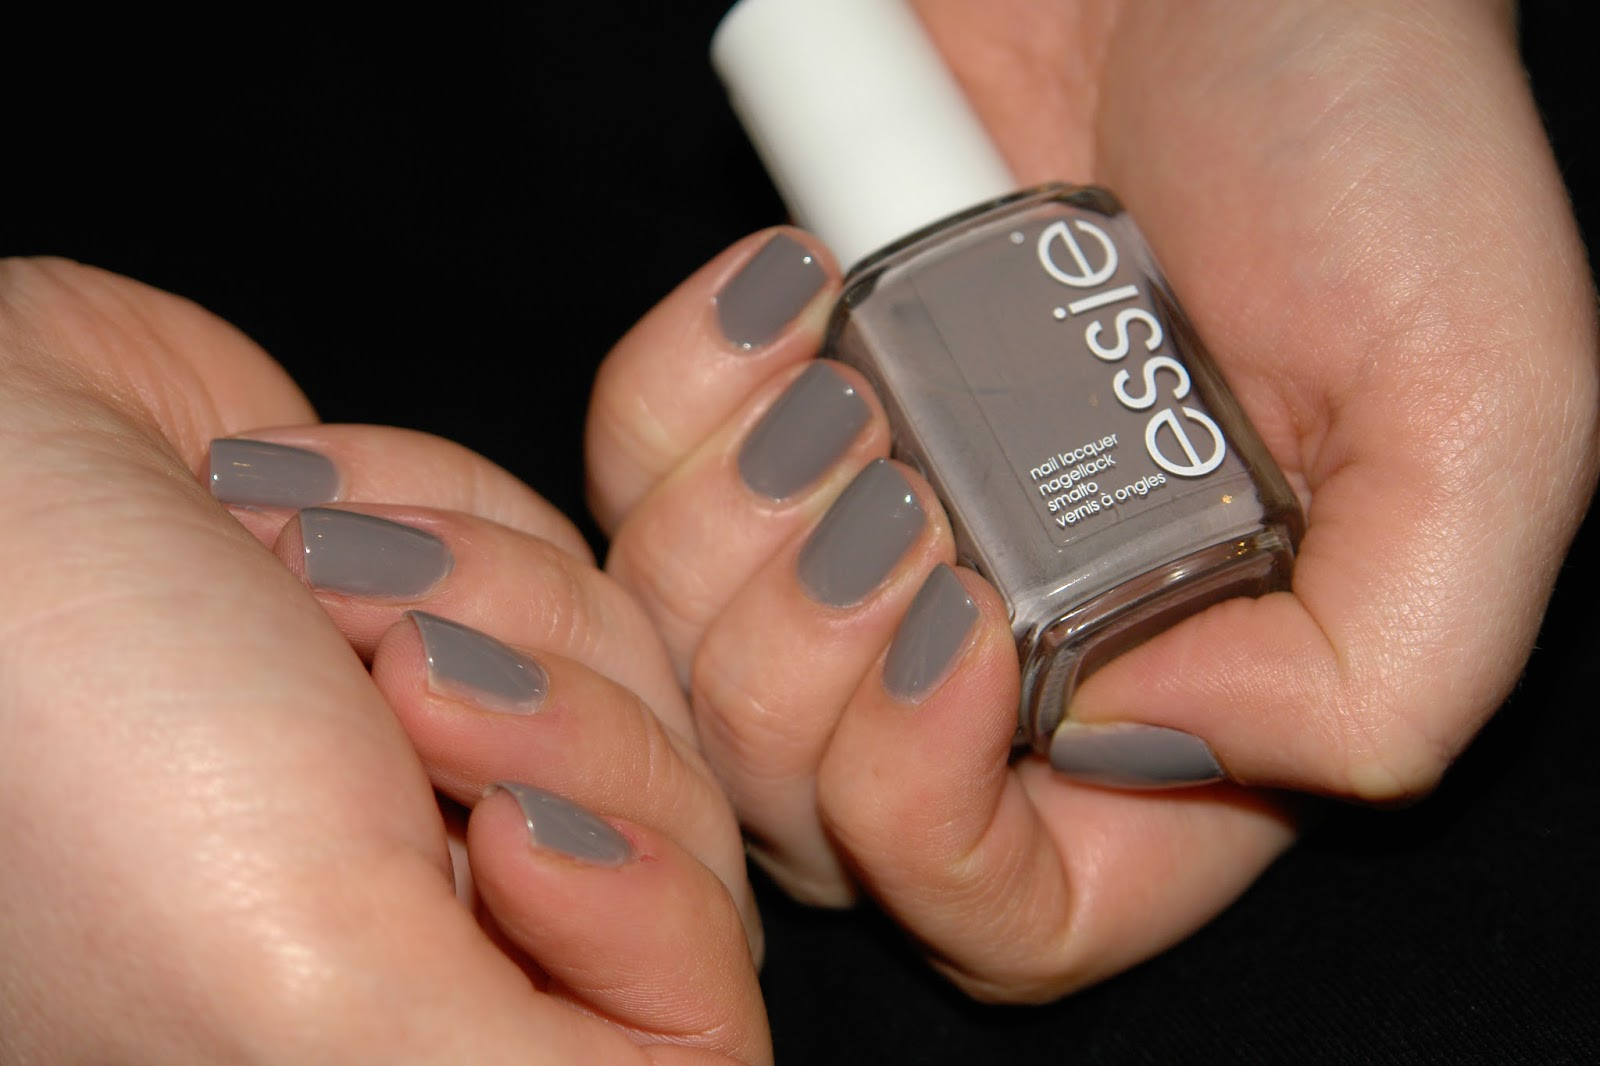 NAILS: Essie Chinchilly, Essie, grey, nail polish, nails, NOTD, swatches, beauty blog, UK blogger